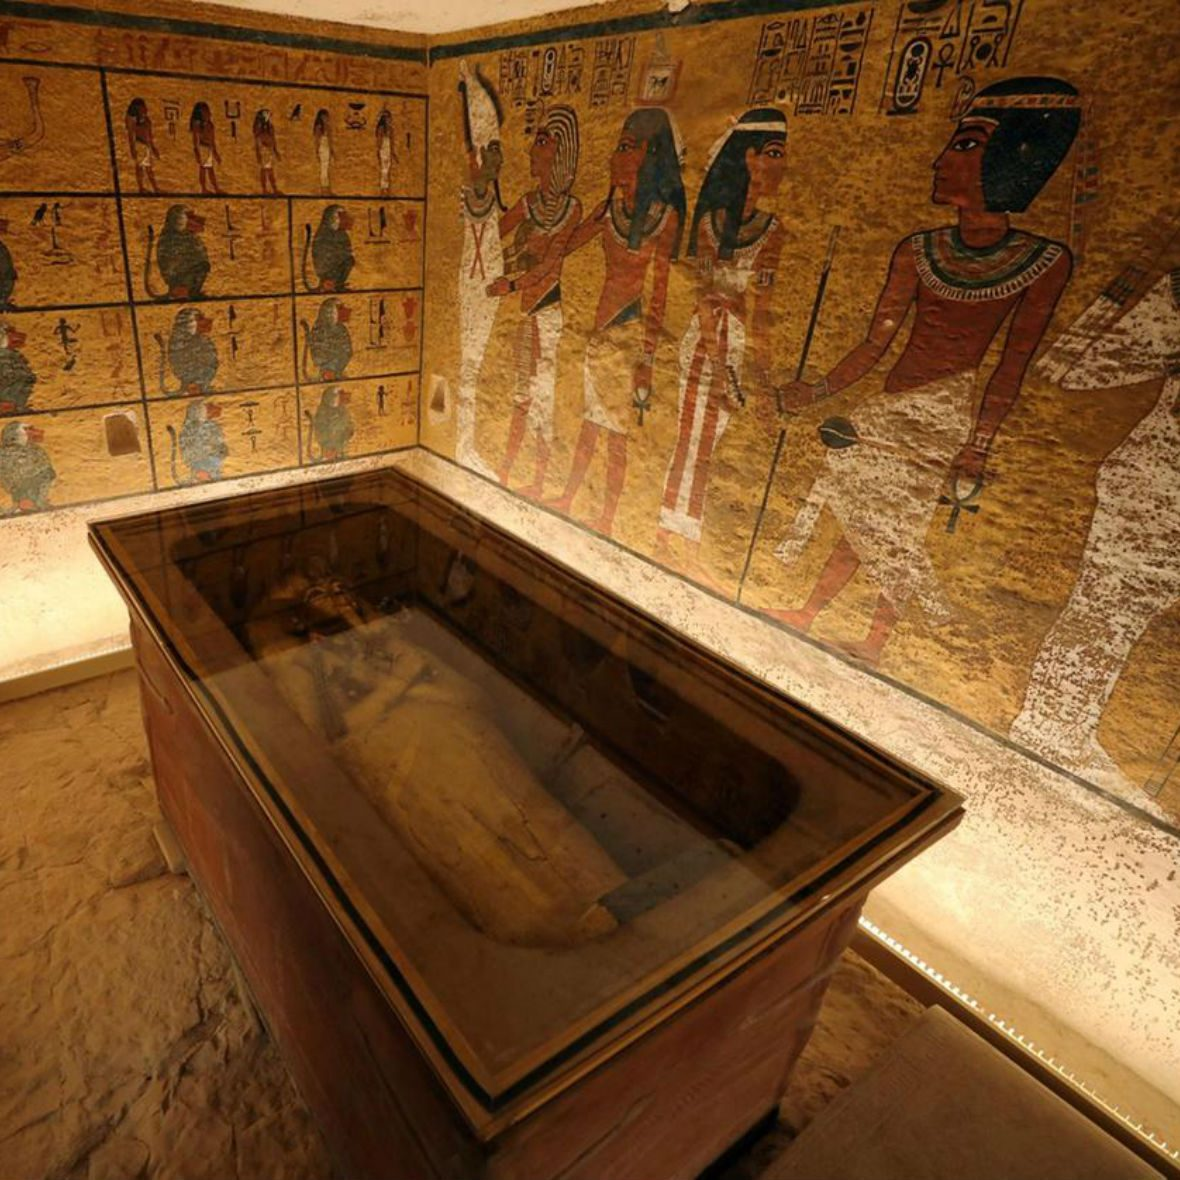 The Curse Of King Tuts Tomb Torrent: King Tut's Tomb Restored